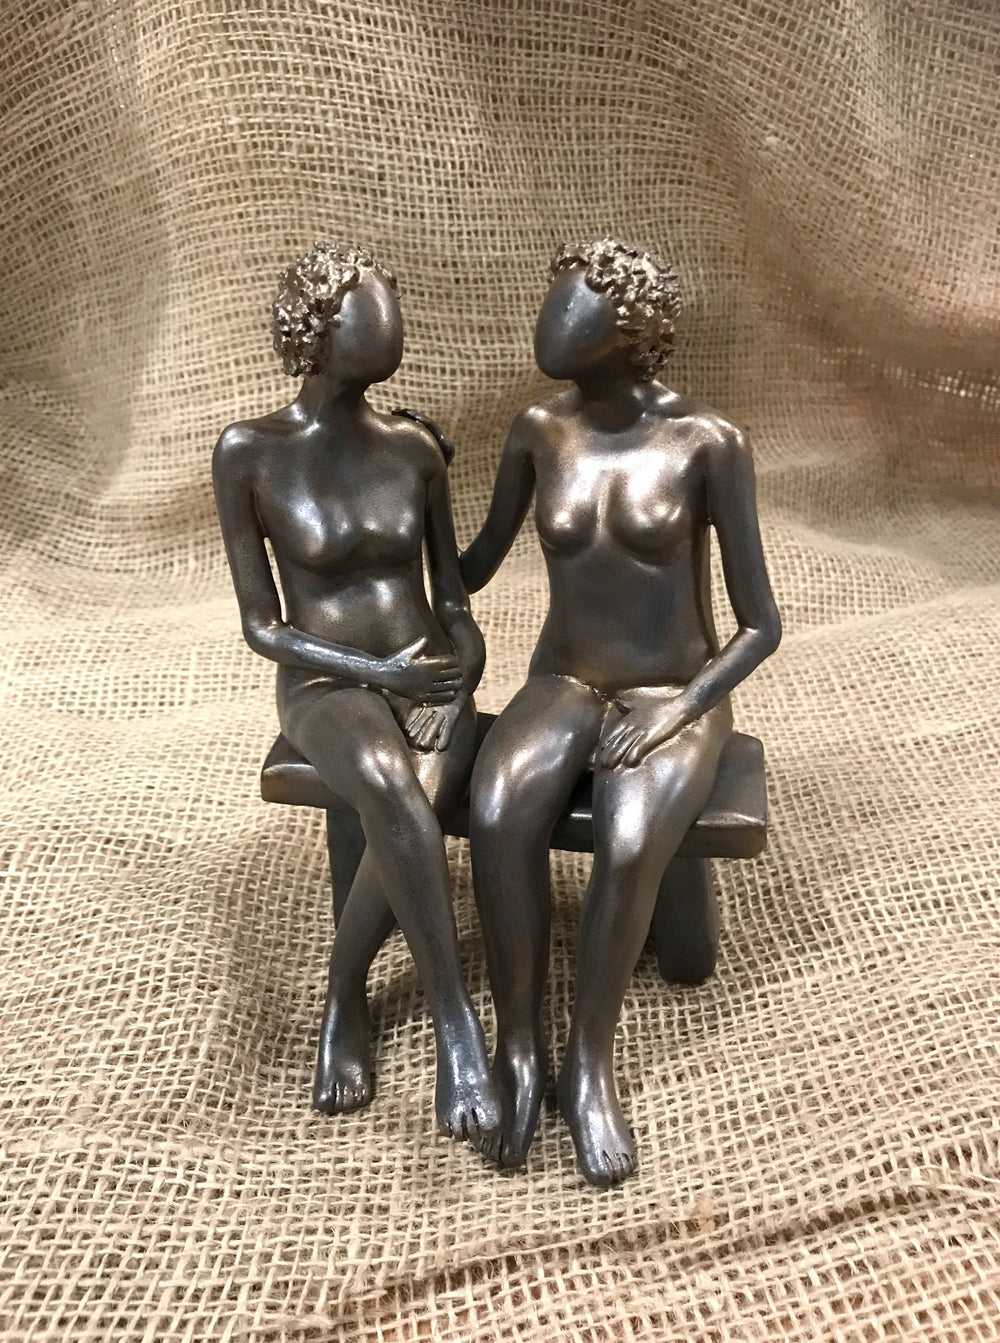 Two women sitting on a bench painted in bronze coloring, made of clay.